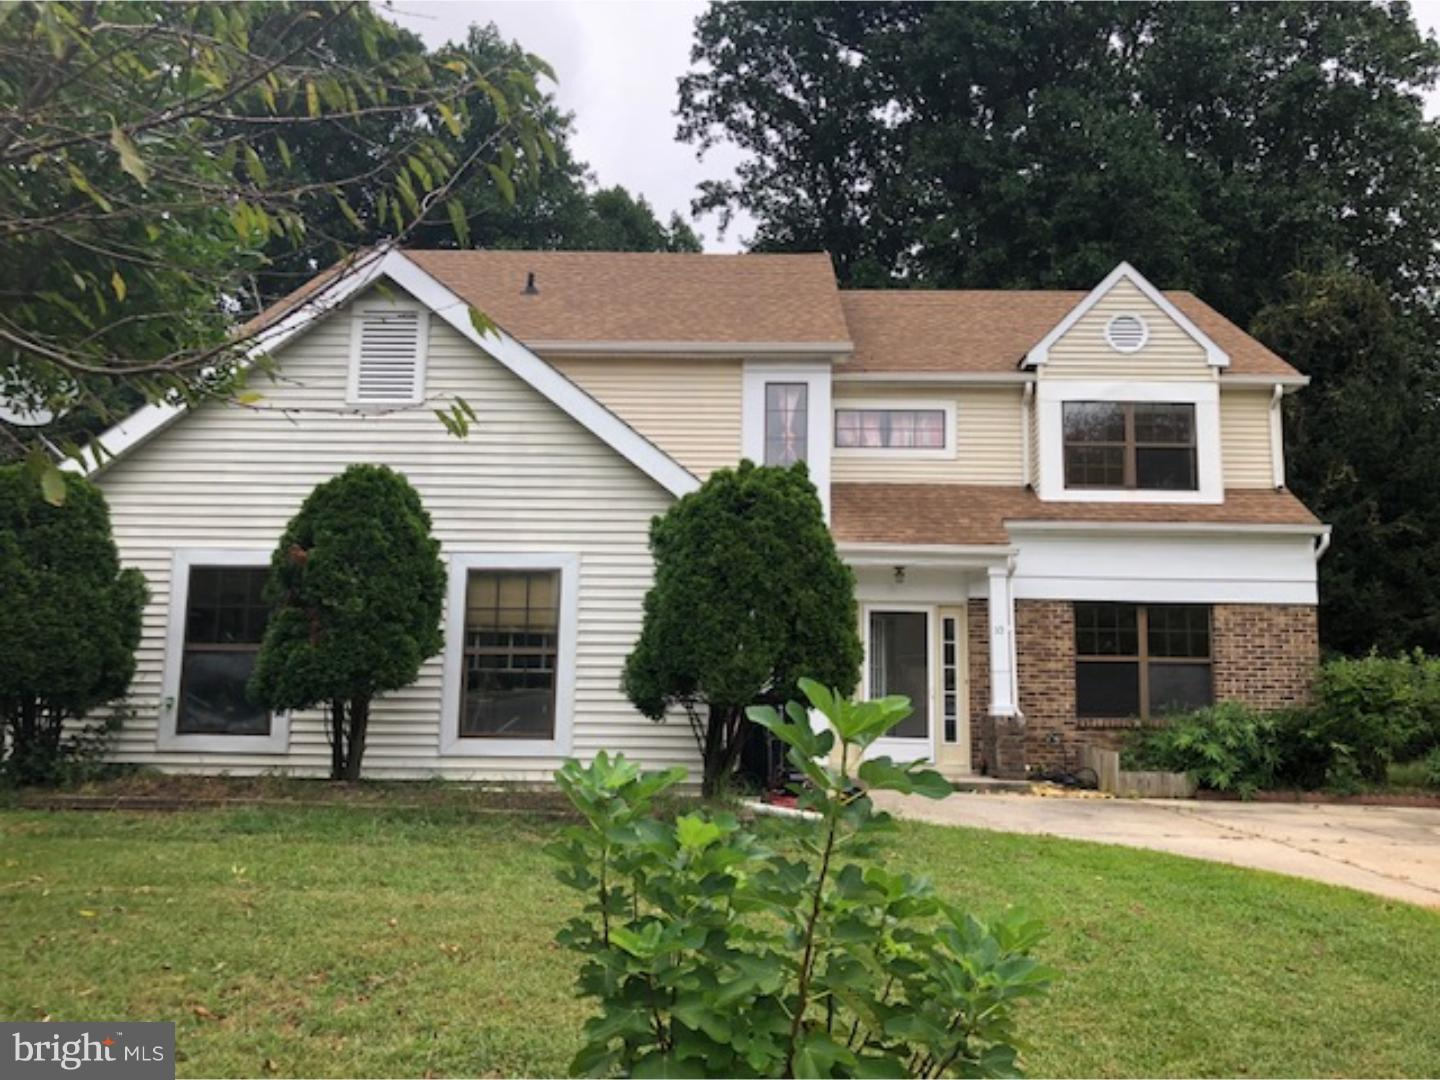 Single Family Home for Sale at 10 LAFAYETTE Drive Clementon, New Jersey 08021 United States